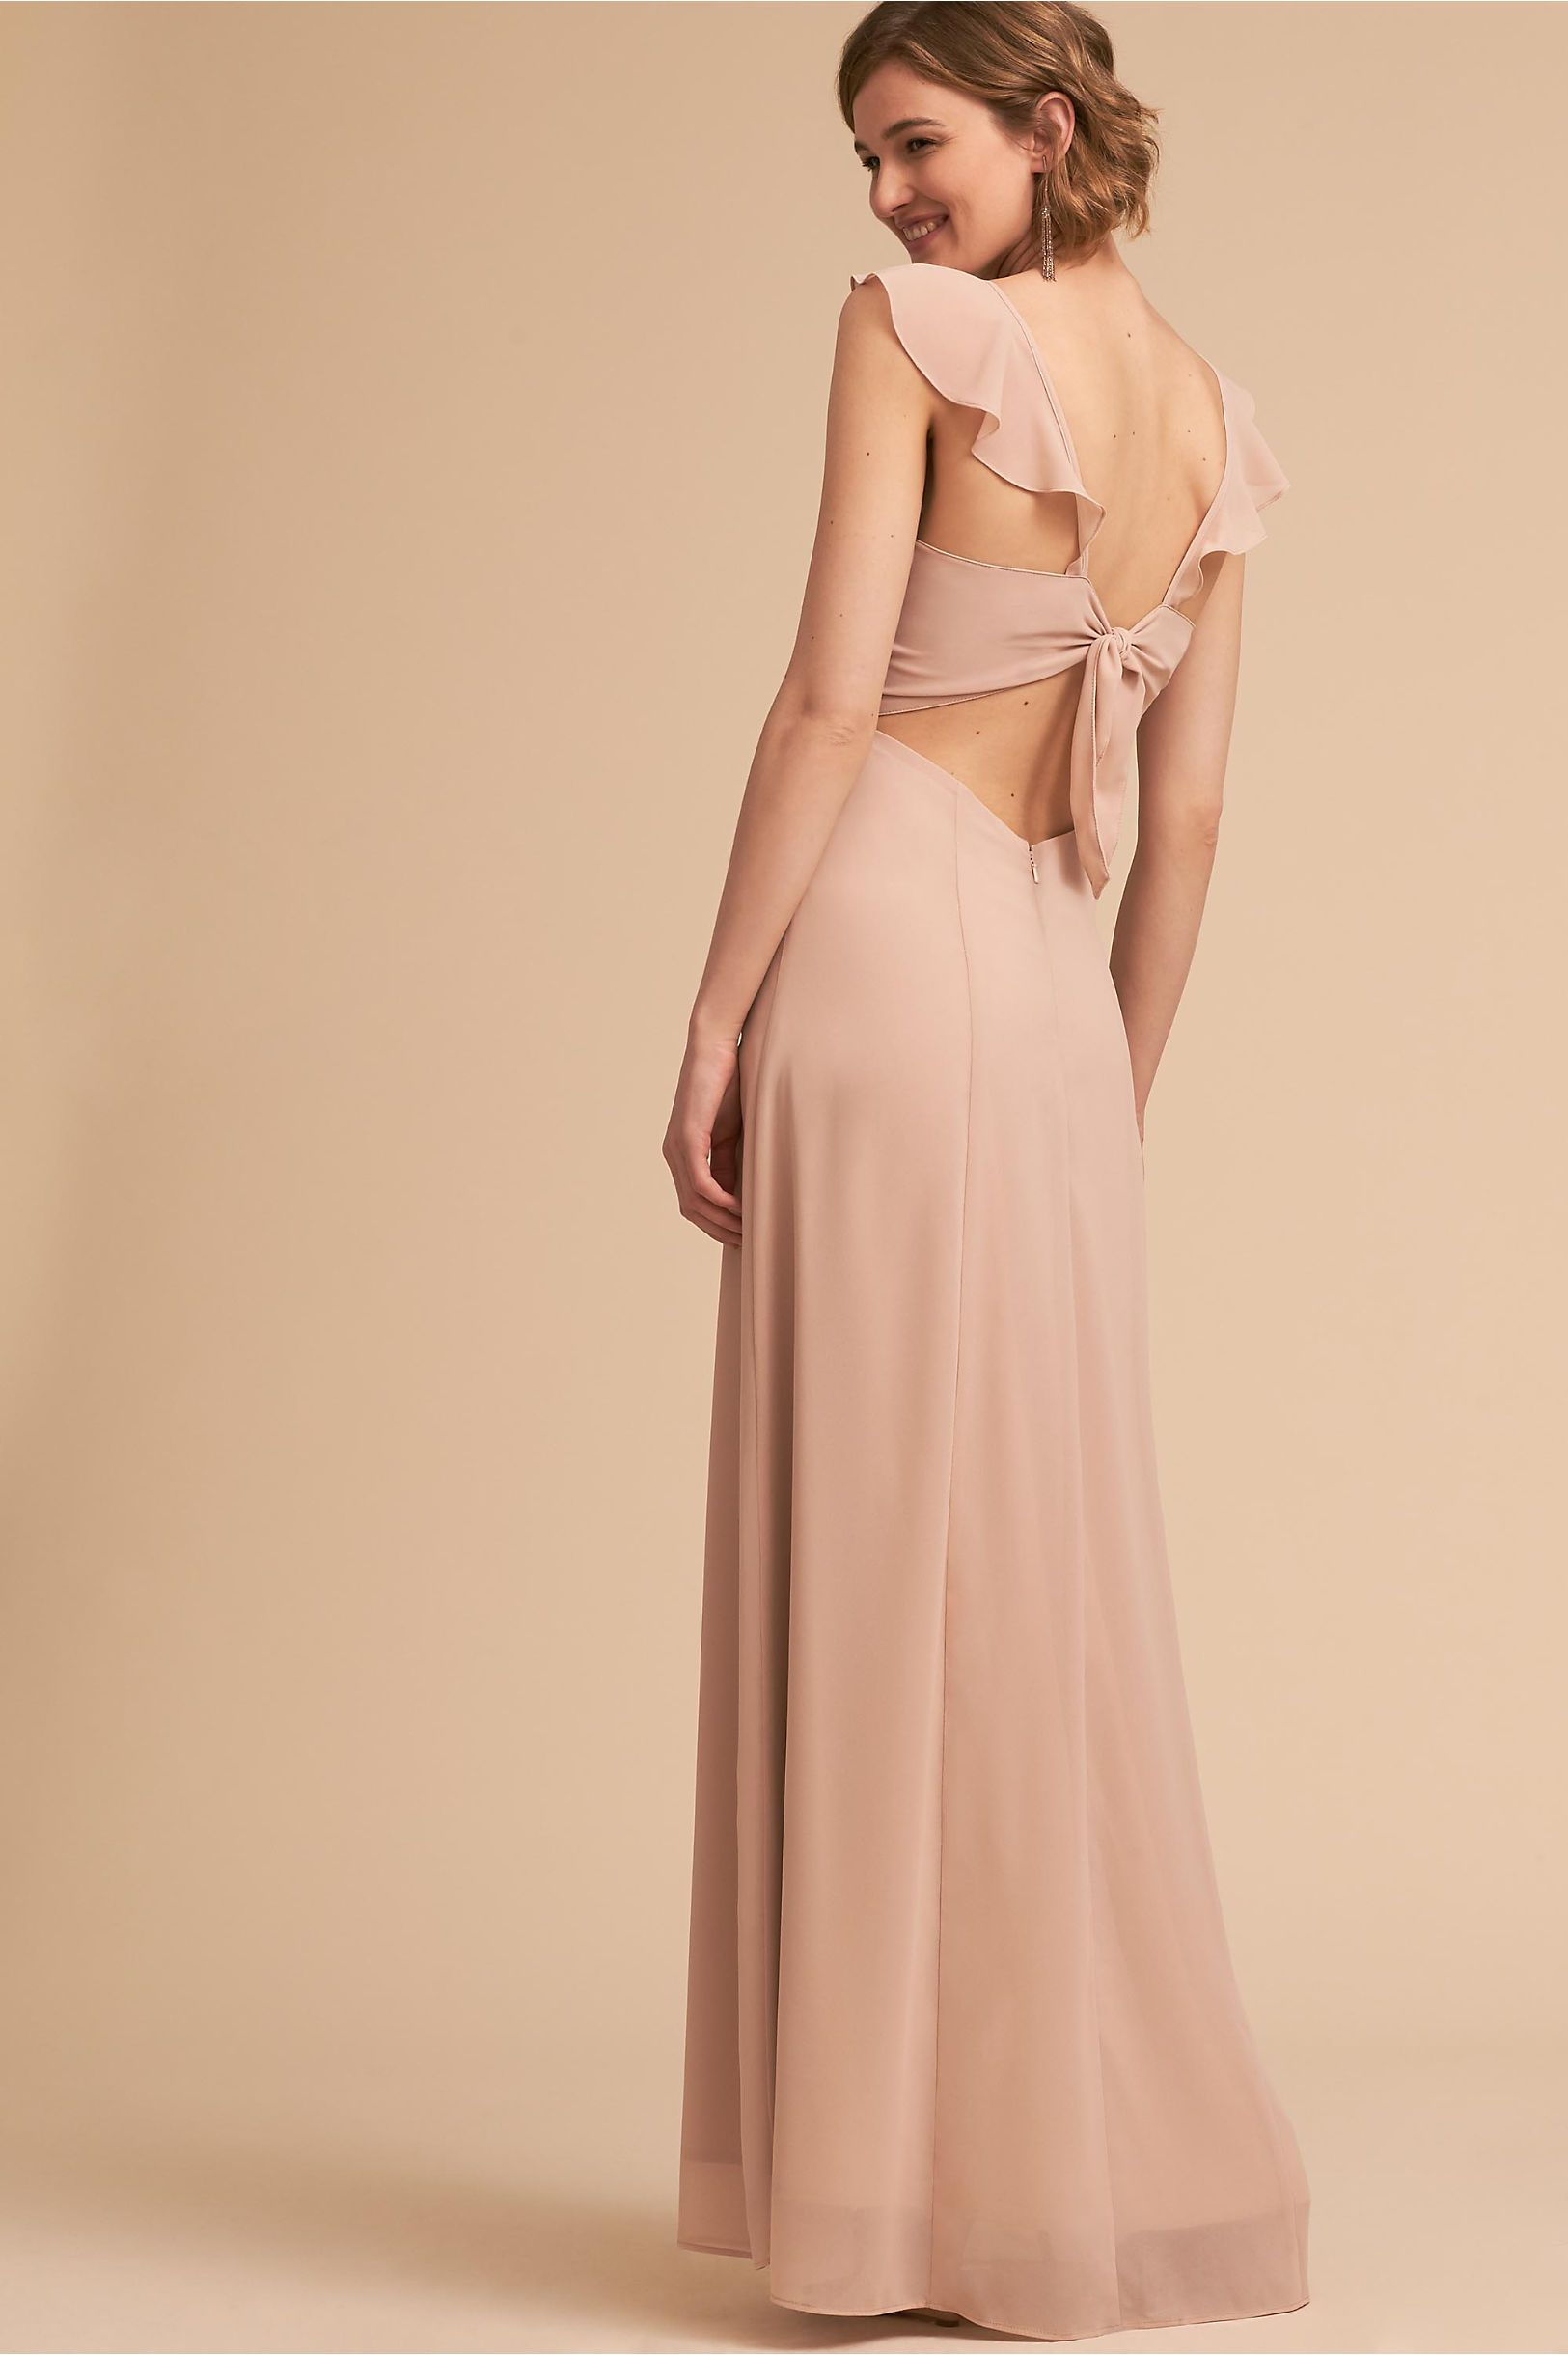 3377ef08b BHLDN Diana Dress Nude in Bridal Party